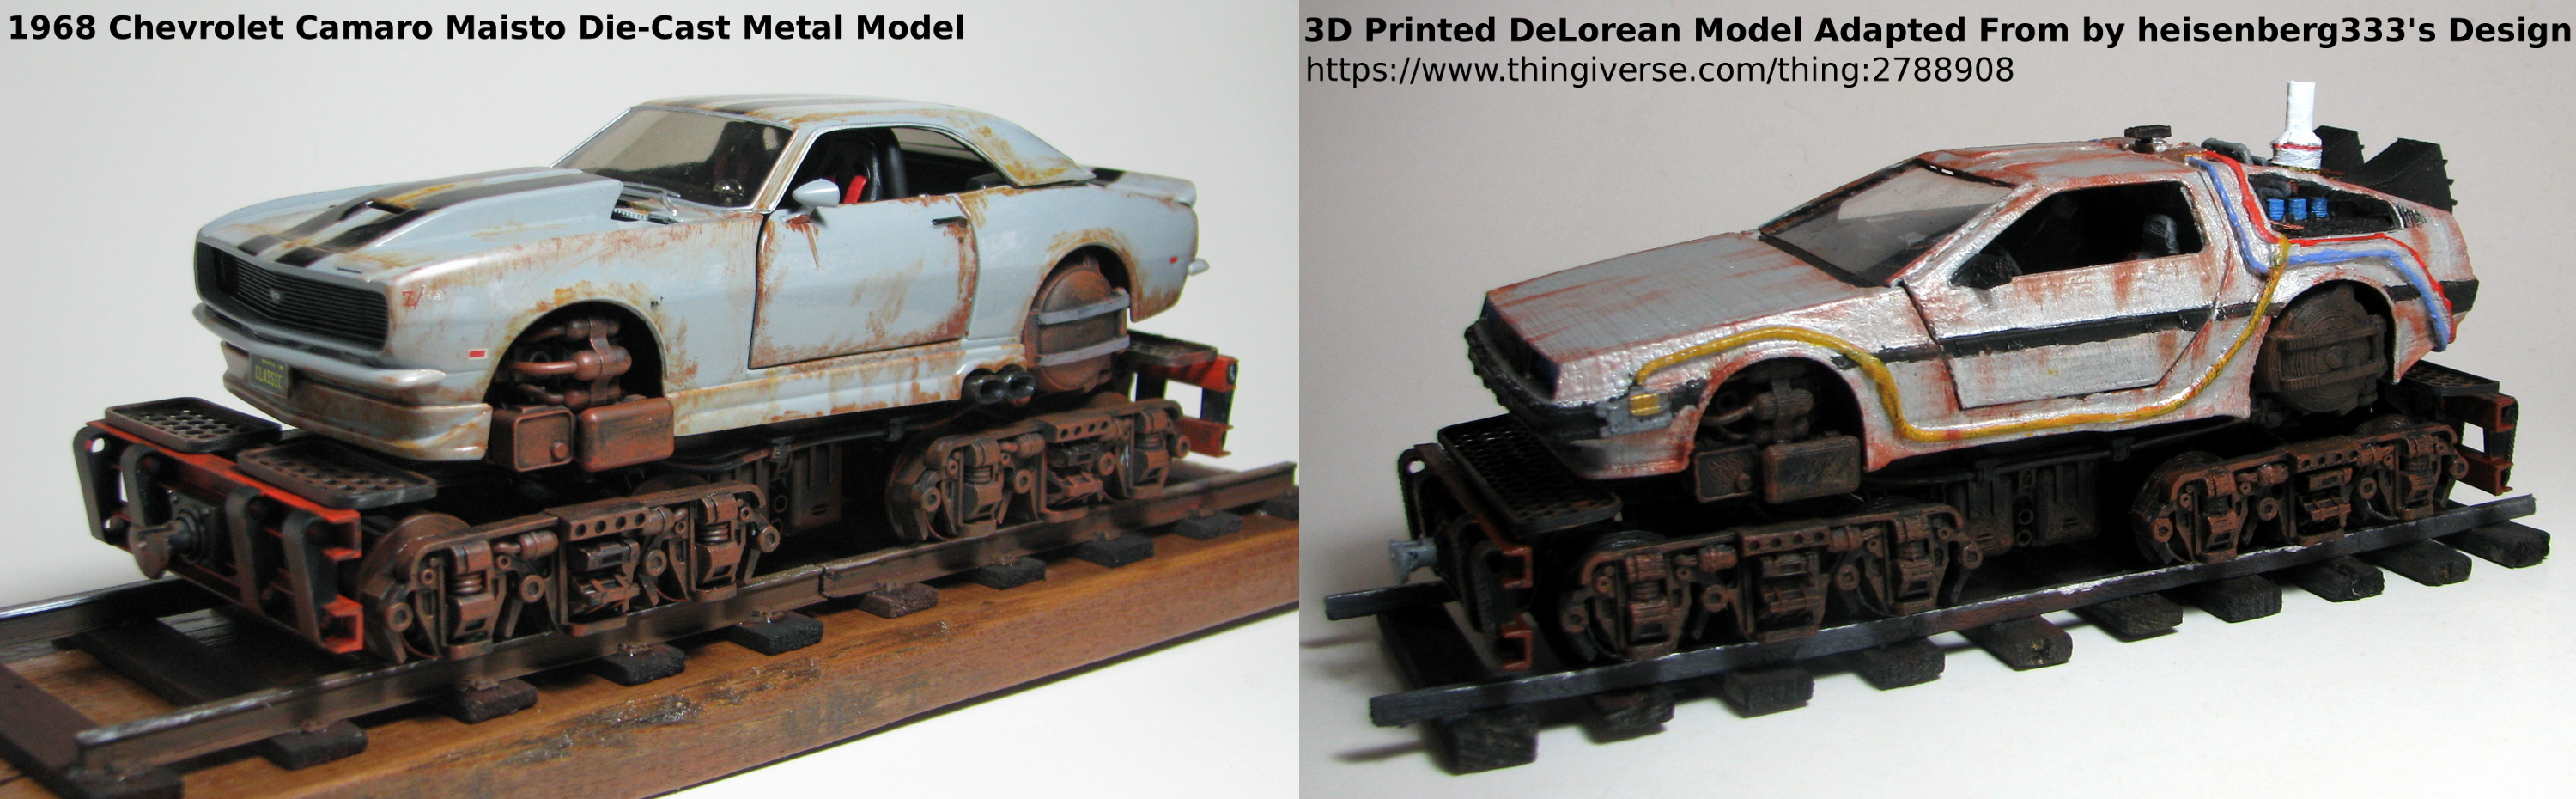 3D Printed Railcar Chassis